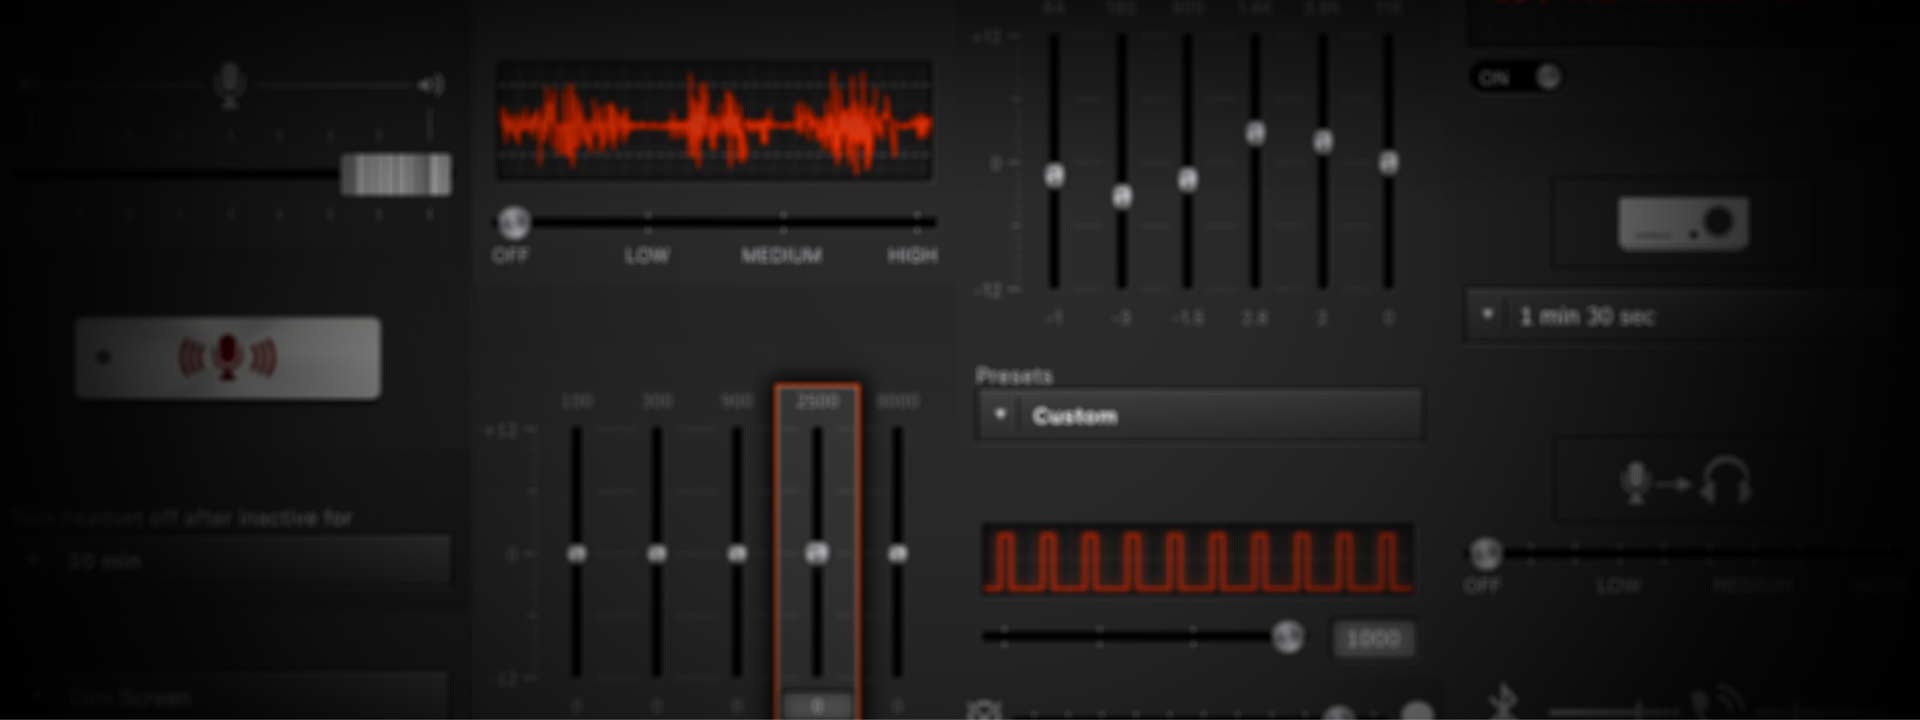 Customize your audio - Tweak your audio to perfection using SteelSeries Engine, allowing you to fully adjust EQ settings, mic level, and sidetone control.